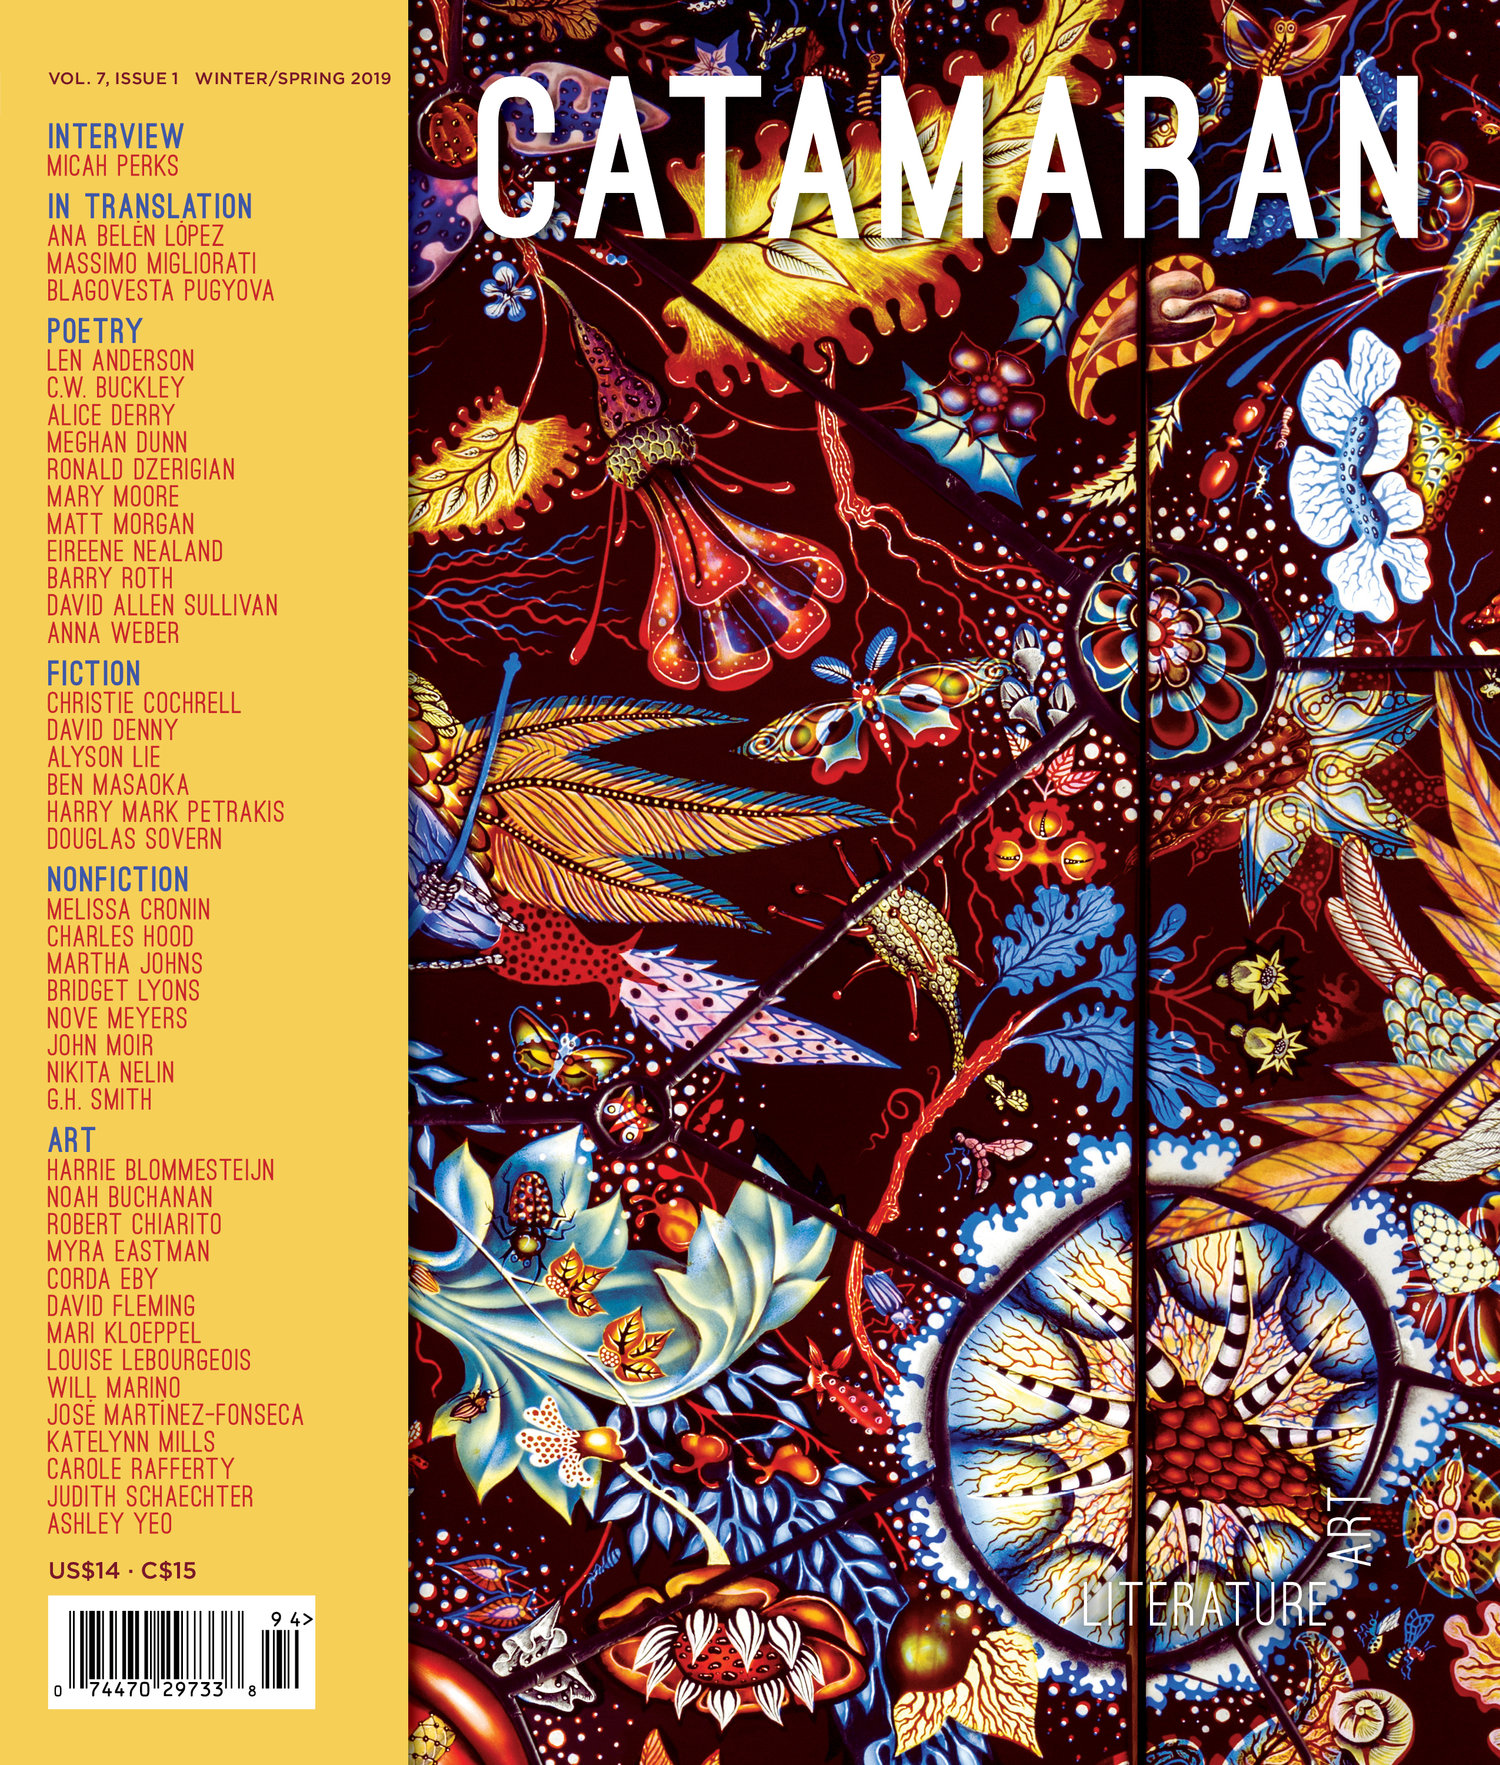 The New Domestic:An Essay for Catamaran Magazine - Vol. 7, Issue 1: Winter/Spring 2019